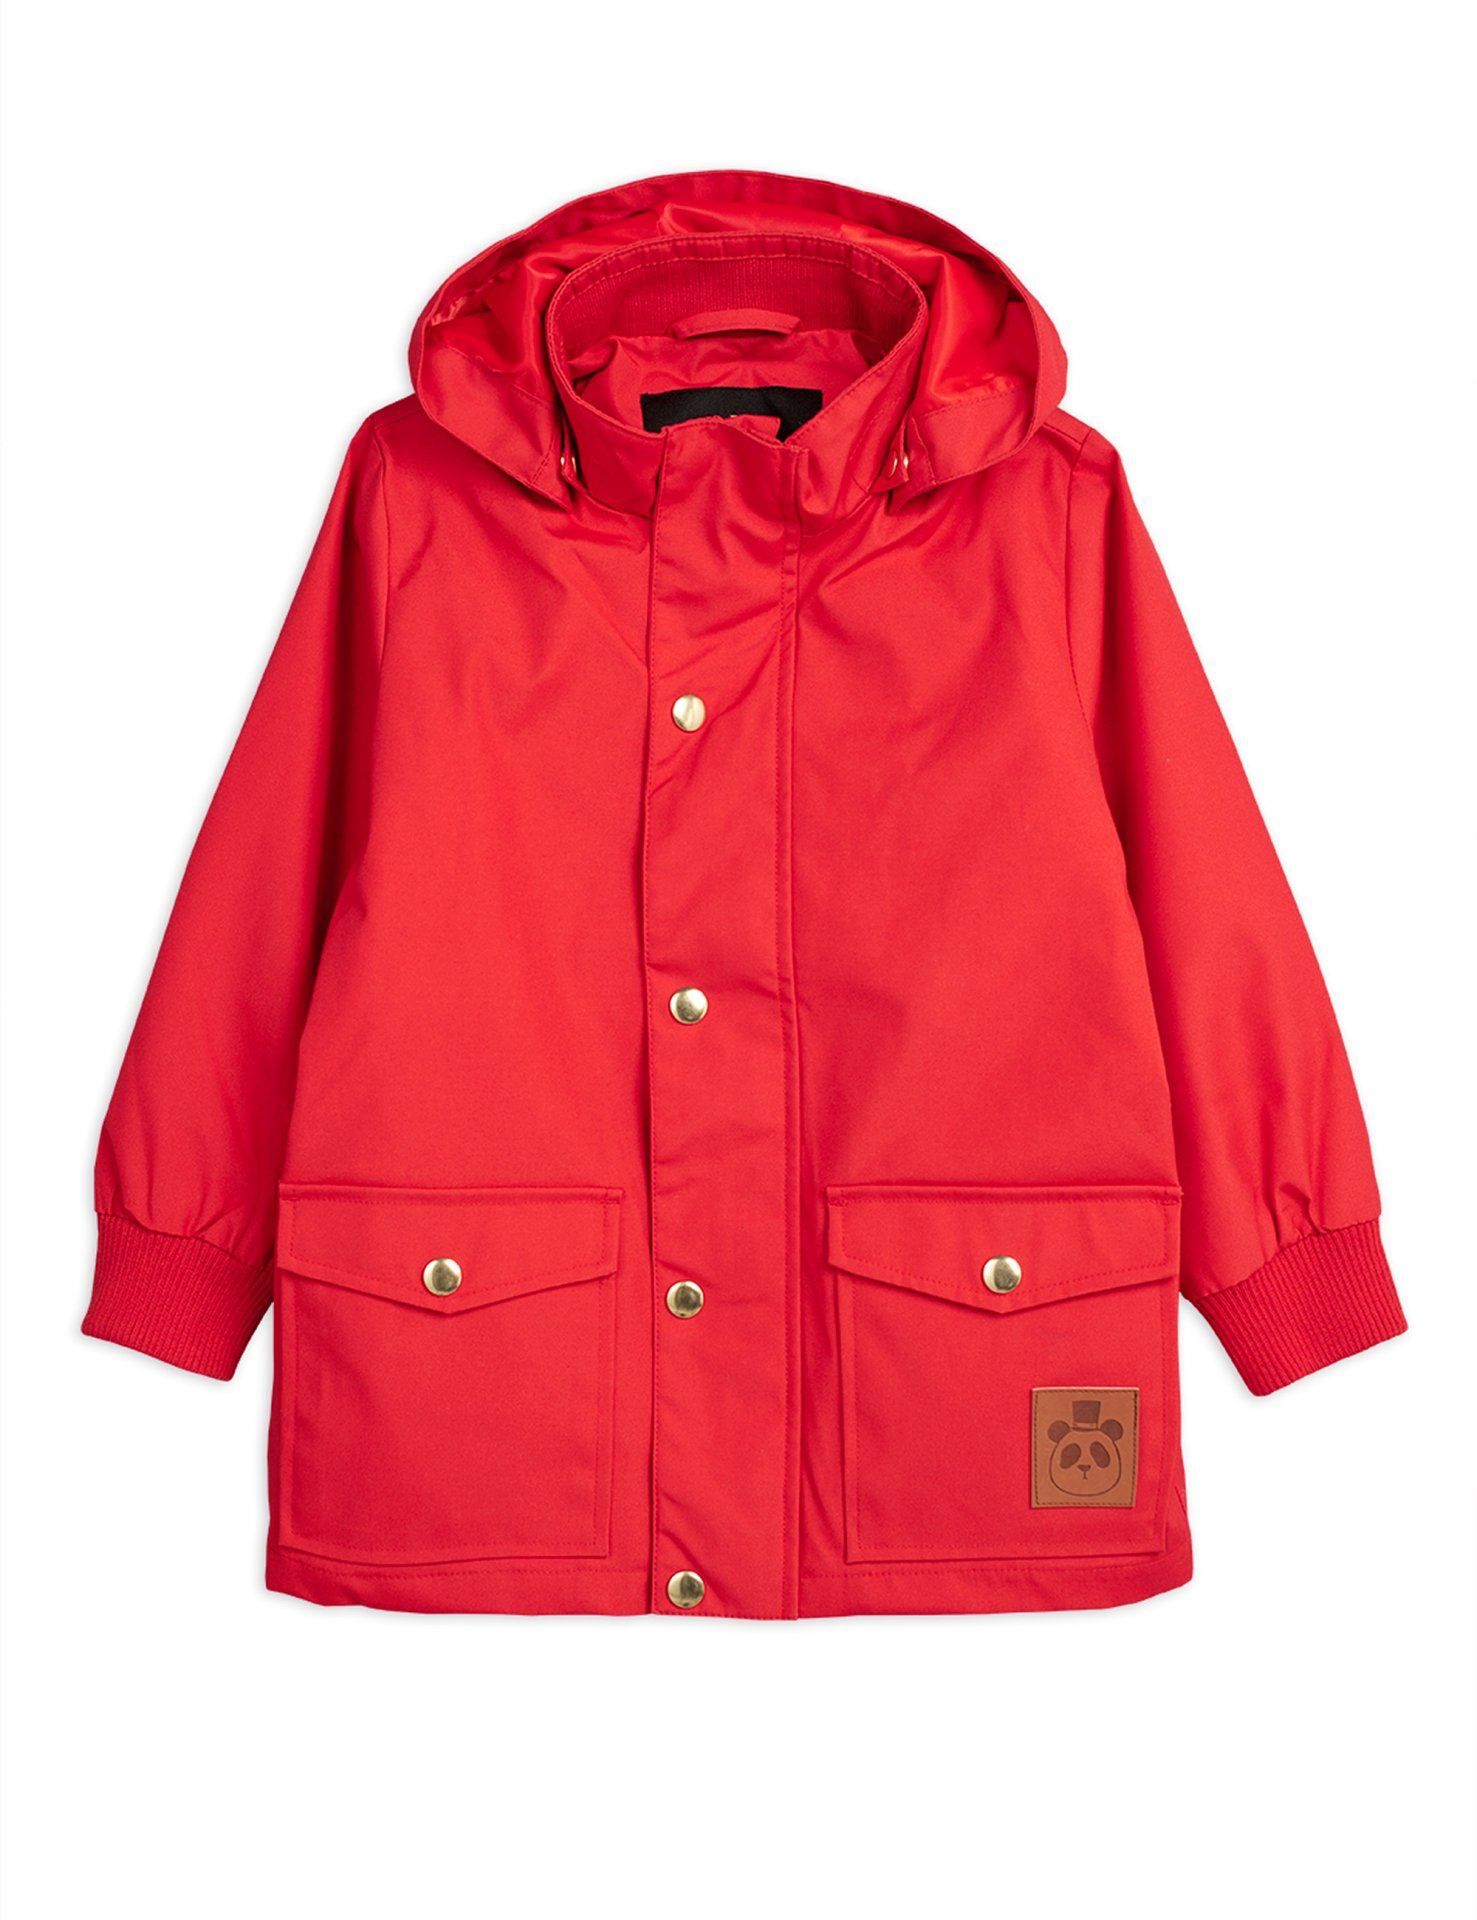 Mini Rodini  Pico Jacket  Red